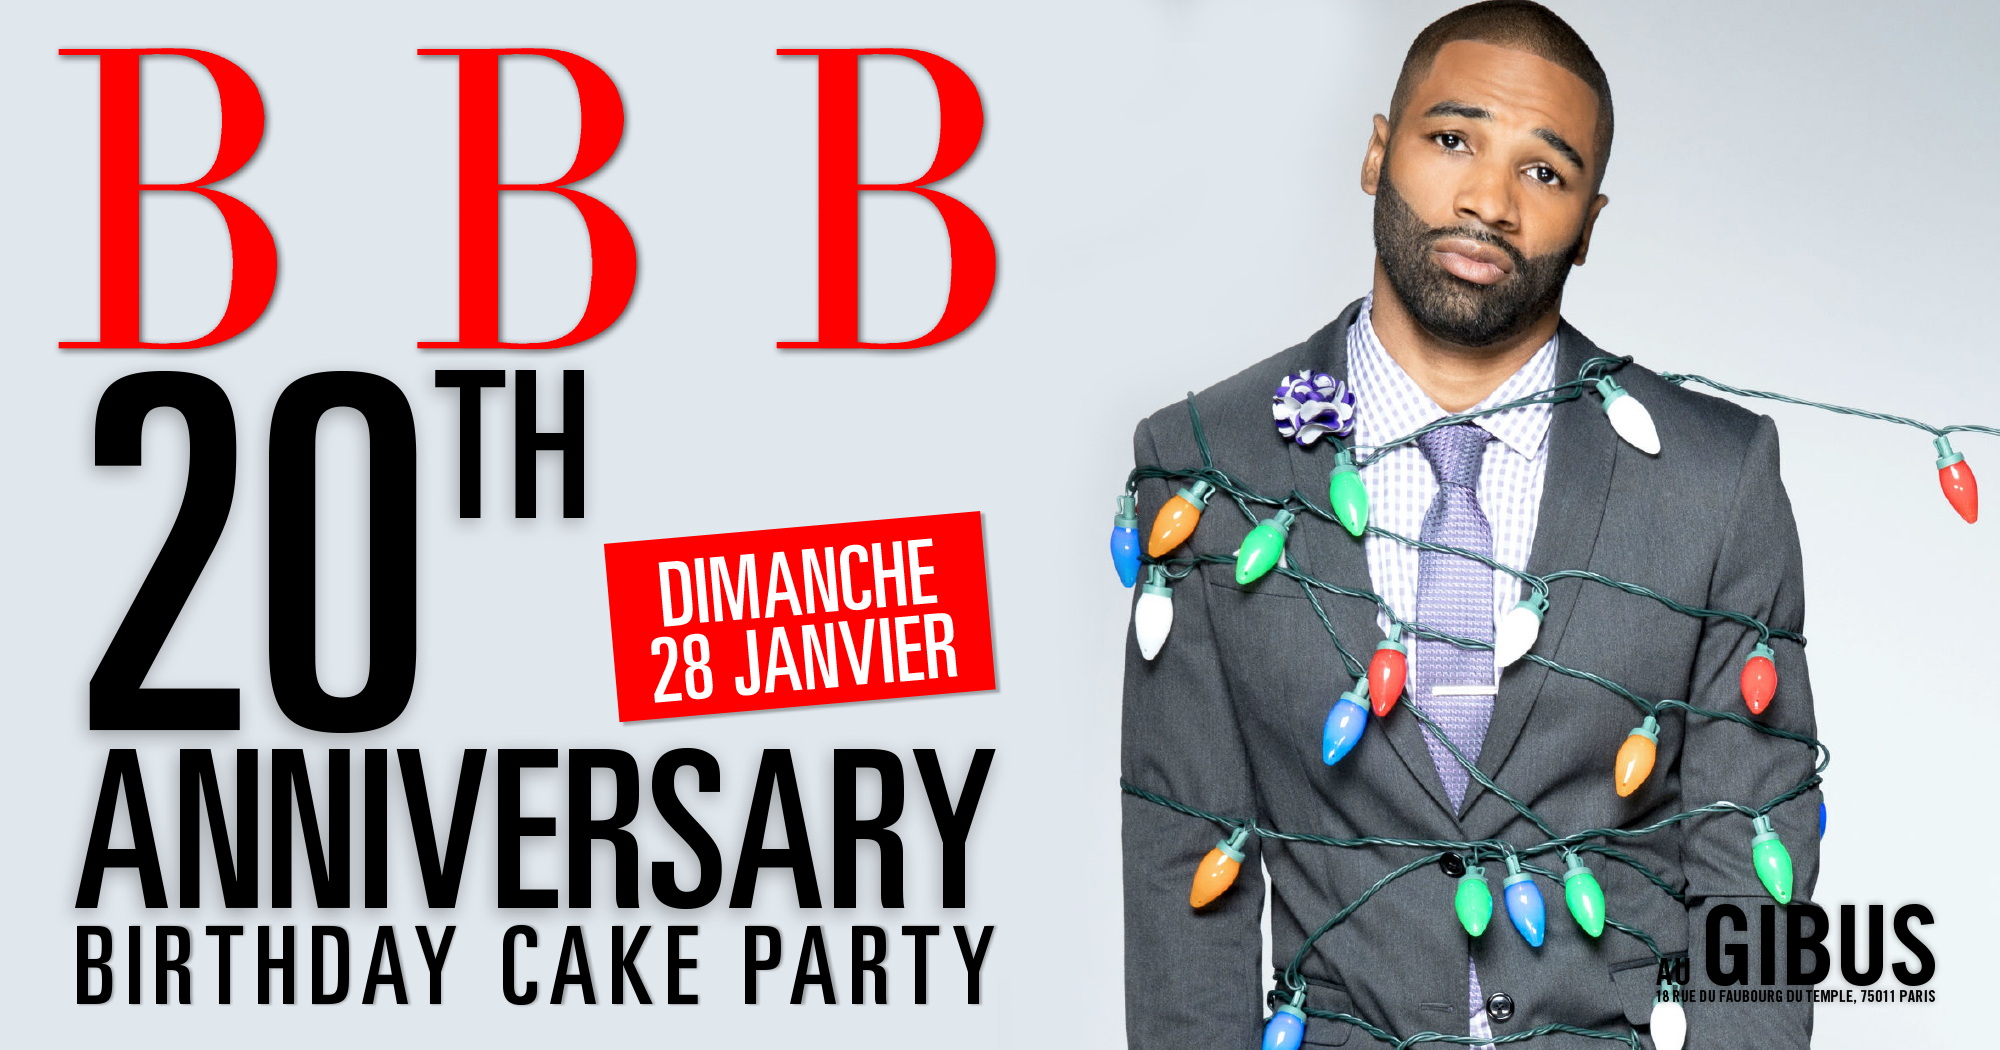 BBB 28 JANVIER.png